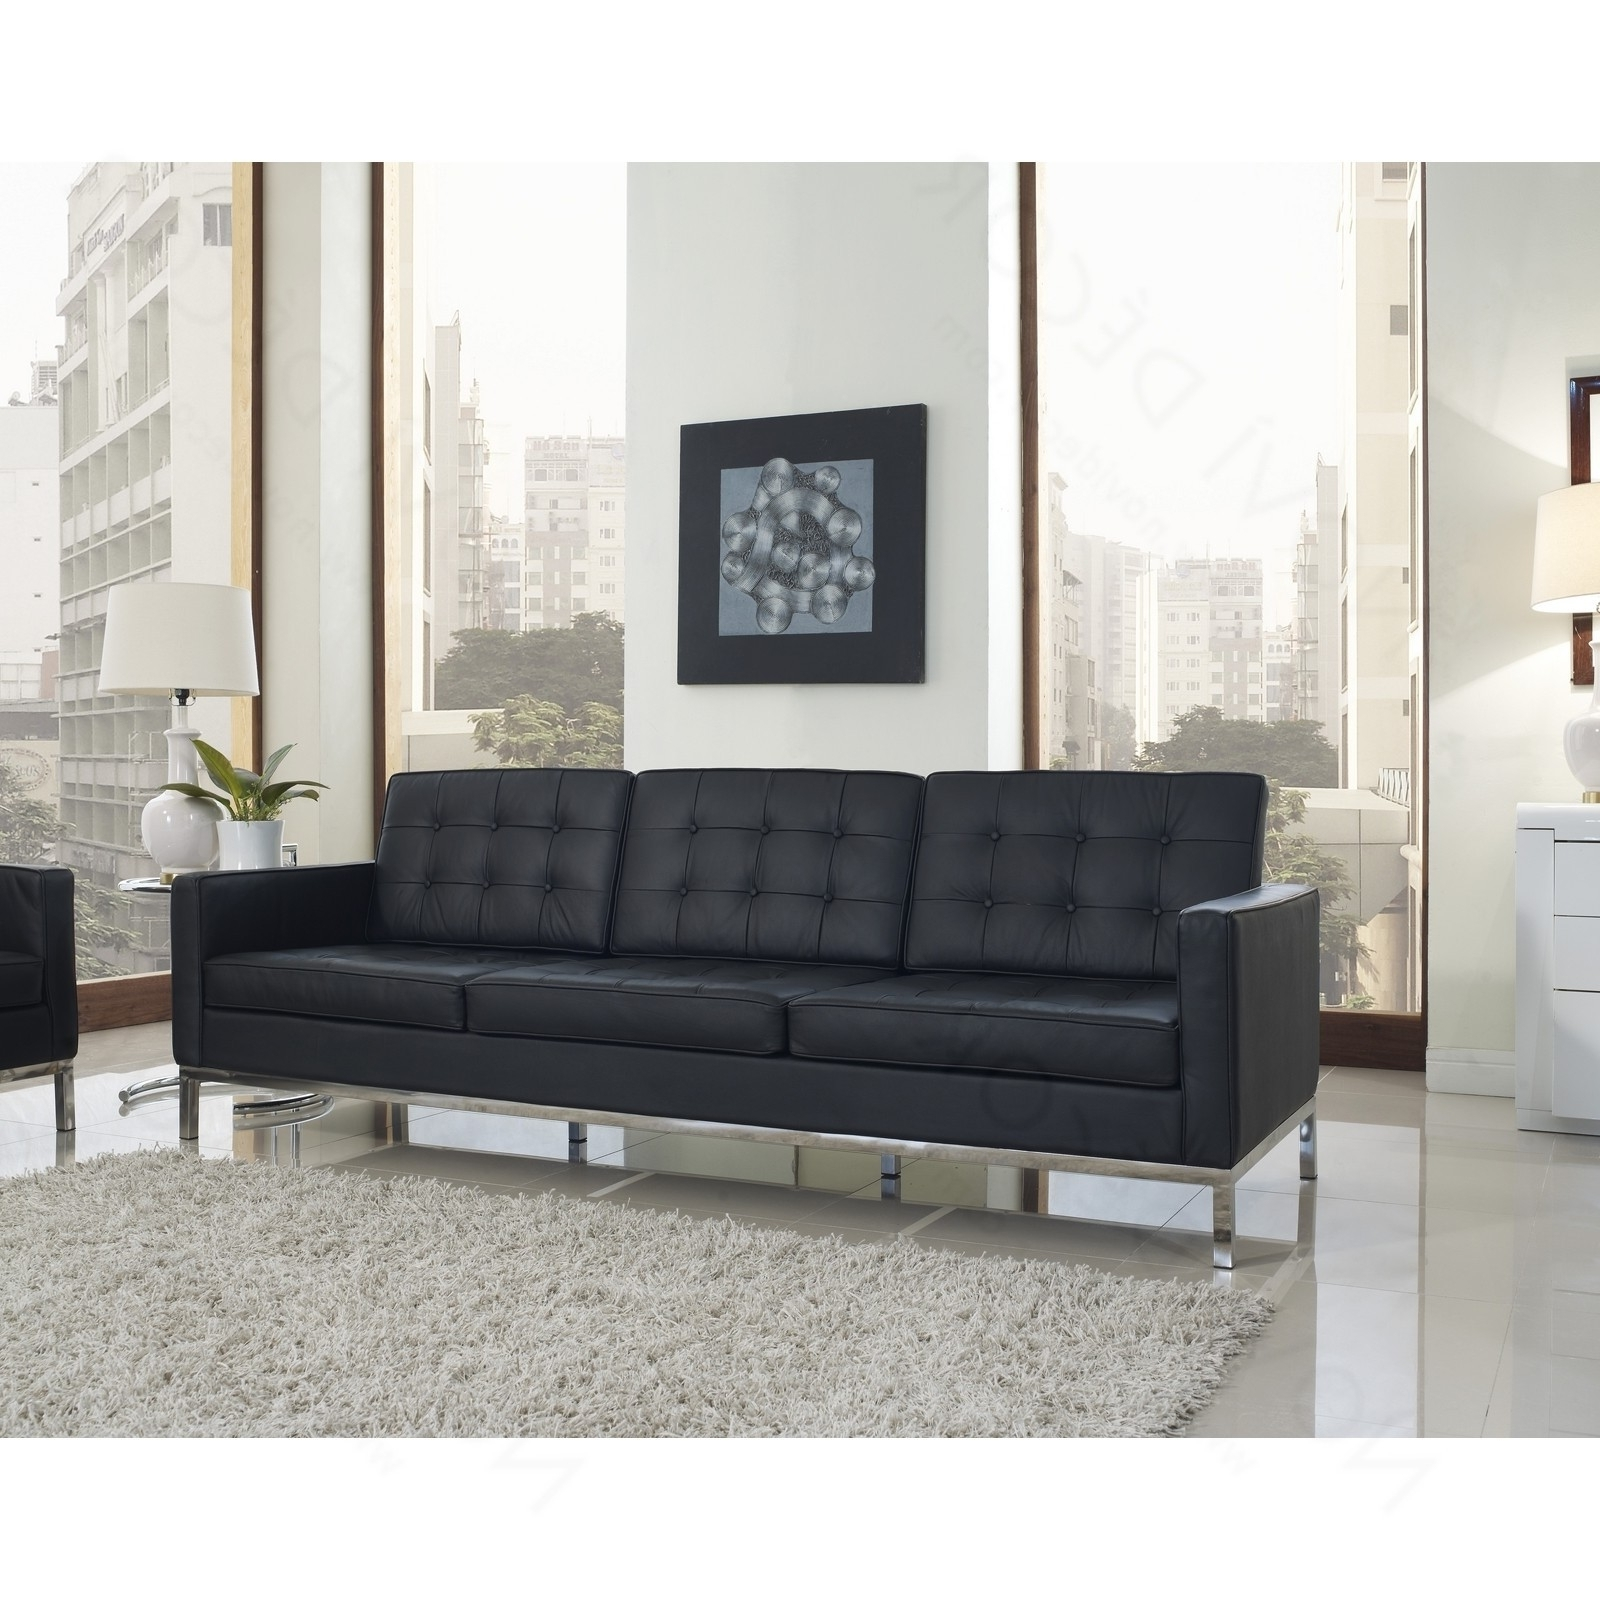 Trendy Florence Knoll Leather Sofas With Florence Knoll Ledersofa – Dreisitzer Sofa Einrichtung Für Das (View 16 of 20)